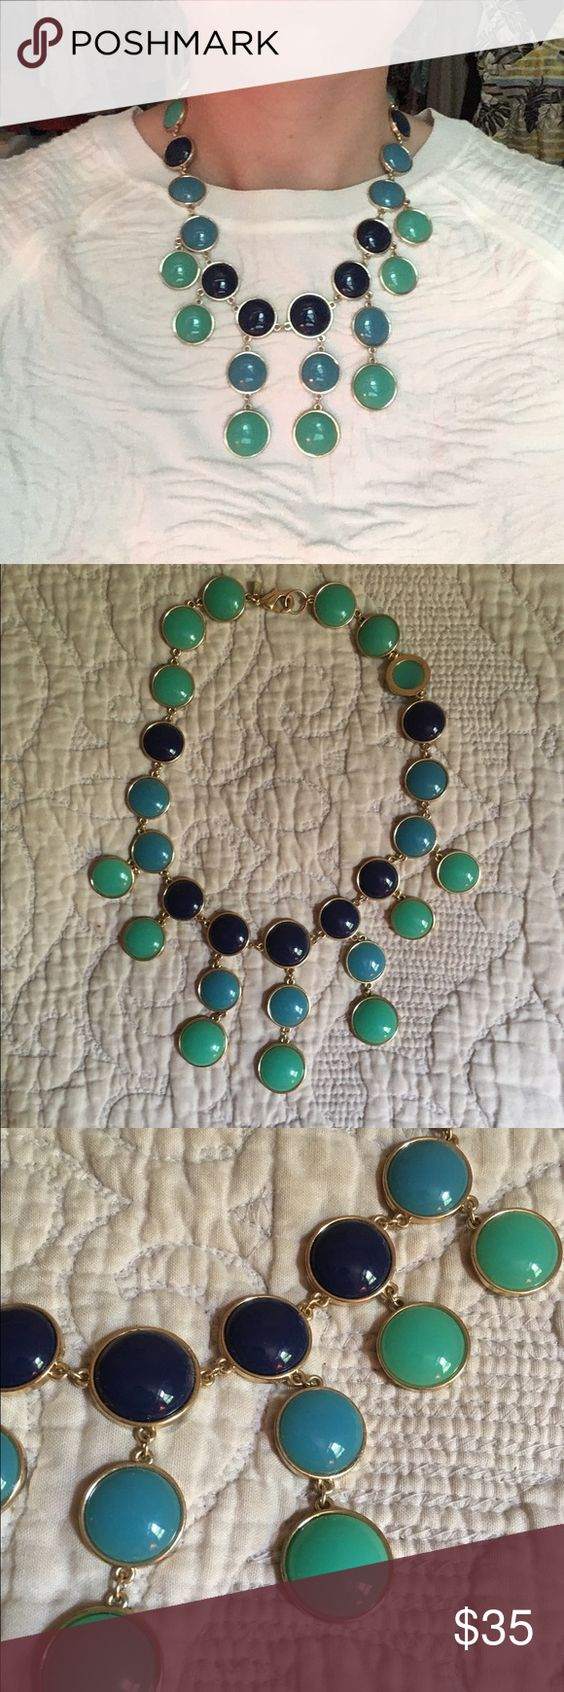 Banana Republic Blue & Green Statement Necklace Colorful and fun statement necklace from Banana Republic. Perfect condition, worn once. Banana Republic Jewelry Necklaces